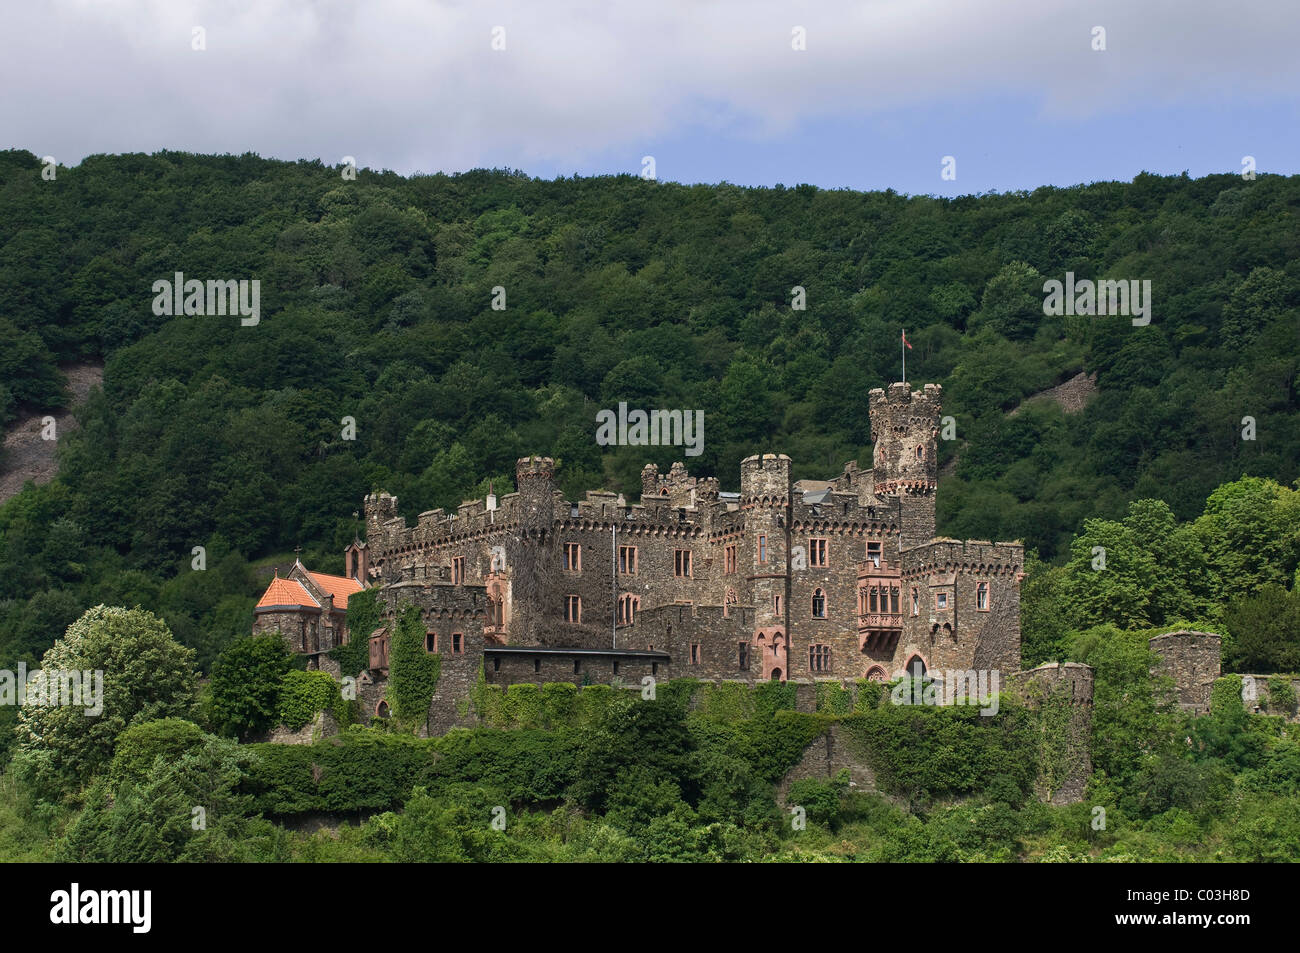 Burg Reichenstein Castle, also known as Falkenstein, UNESCO World Heritage Cultural Landscape of the Upper Middle - Stock Image